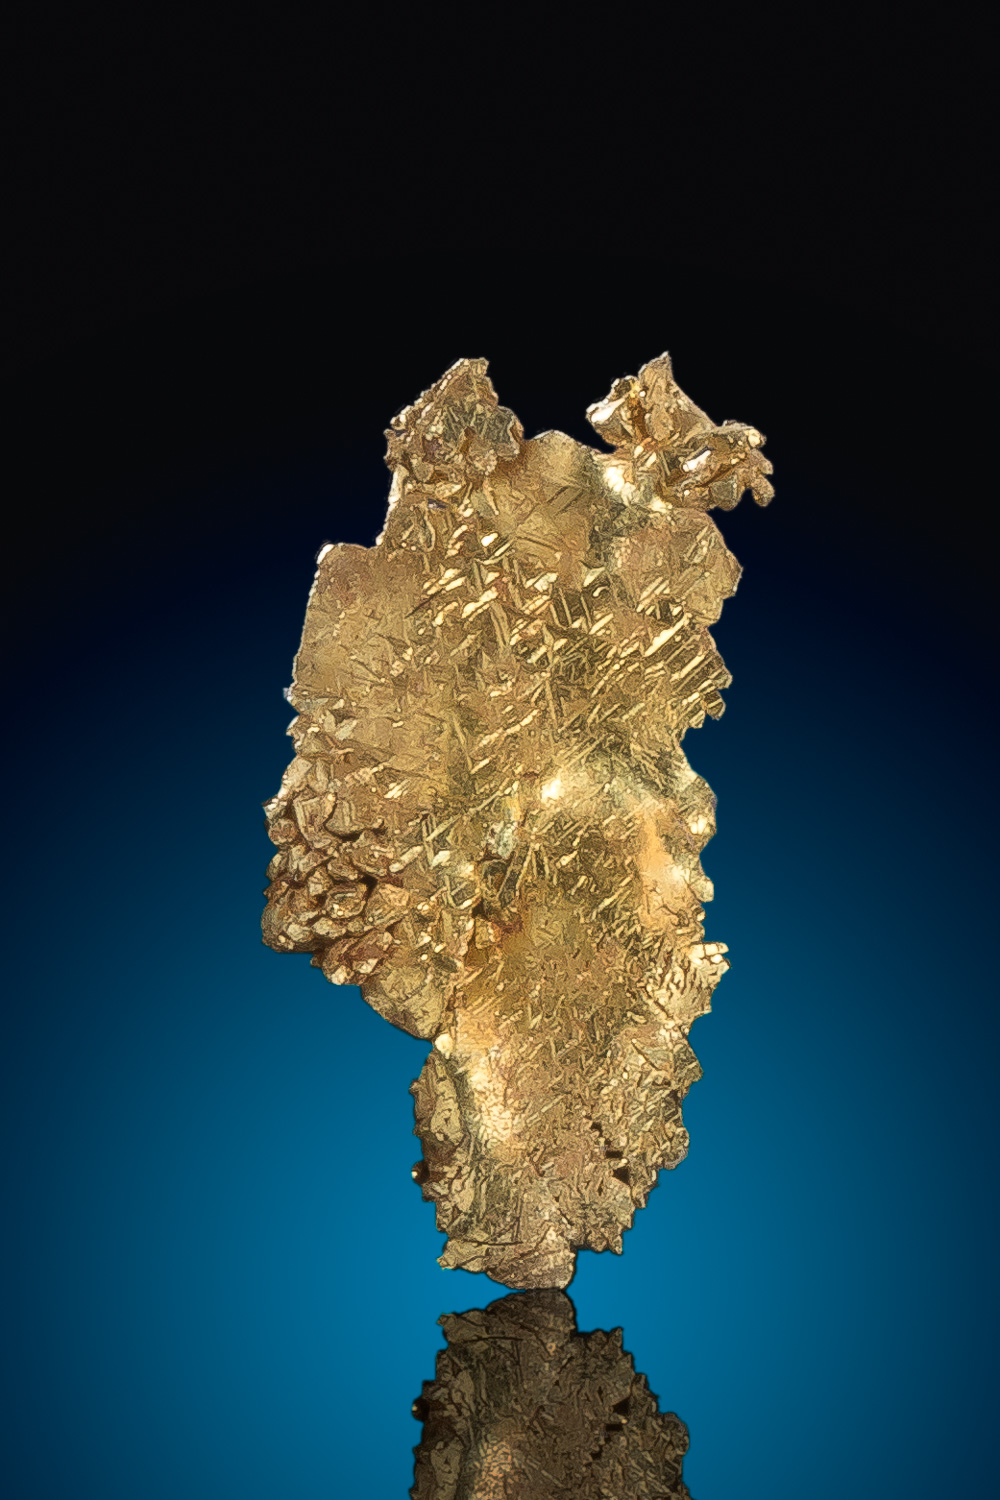 Rare Crystalized Leaf Gold Specimen - Round Mountain